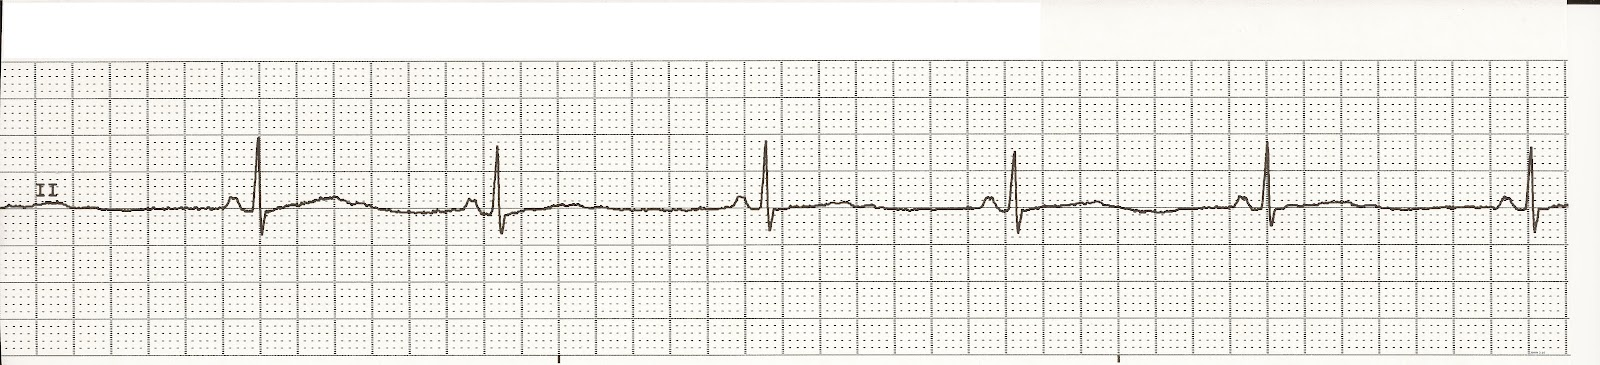 how to read ekg rhythm strips